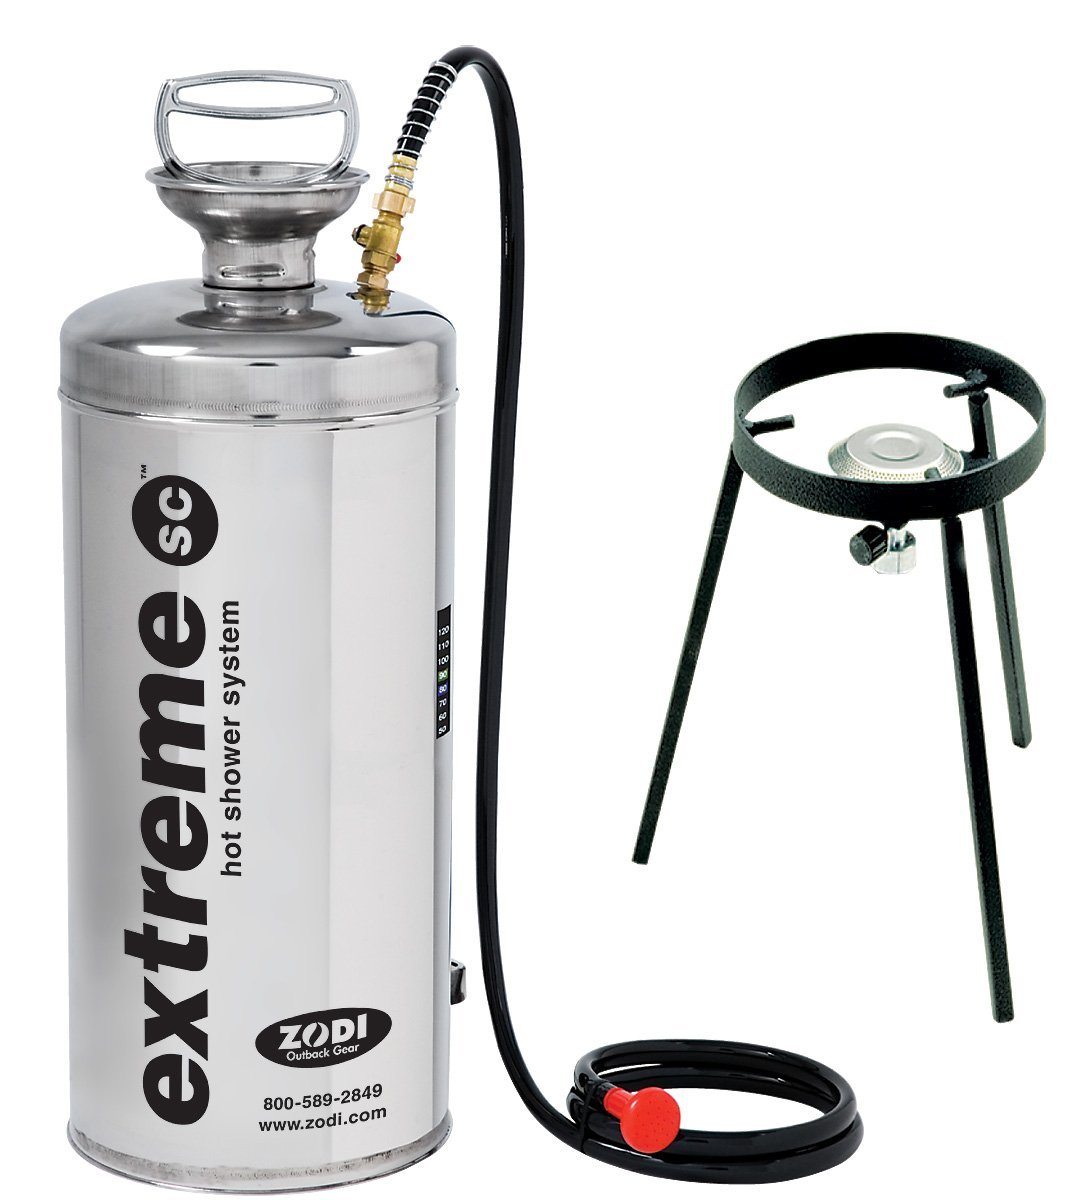 Battery Operated Water Heater Best Portable Water Heater For Camping 5 Reviews And Buying Guide